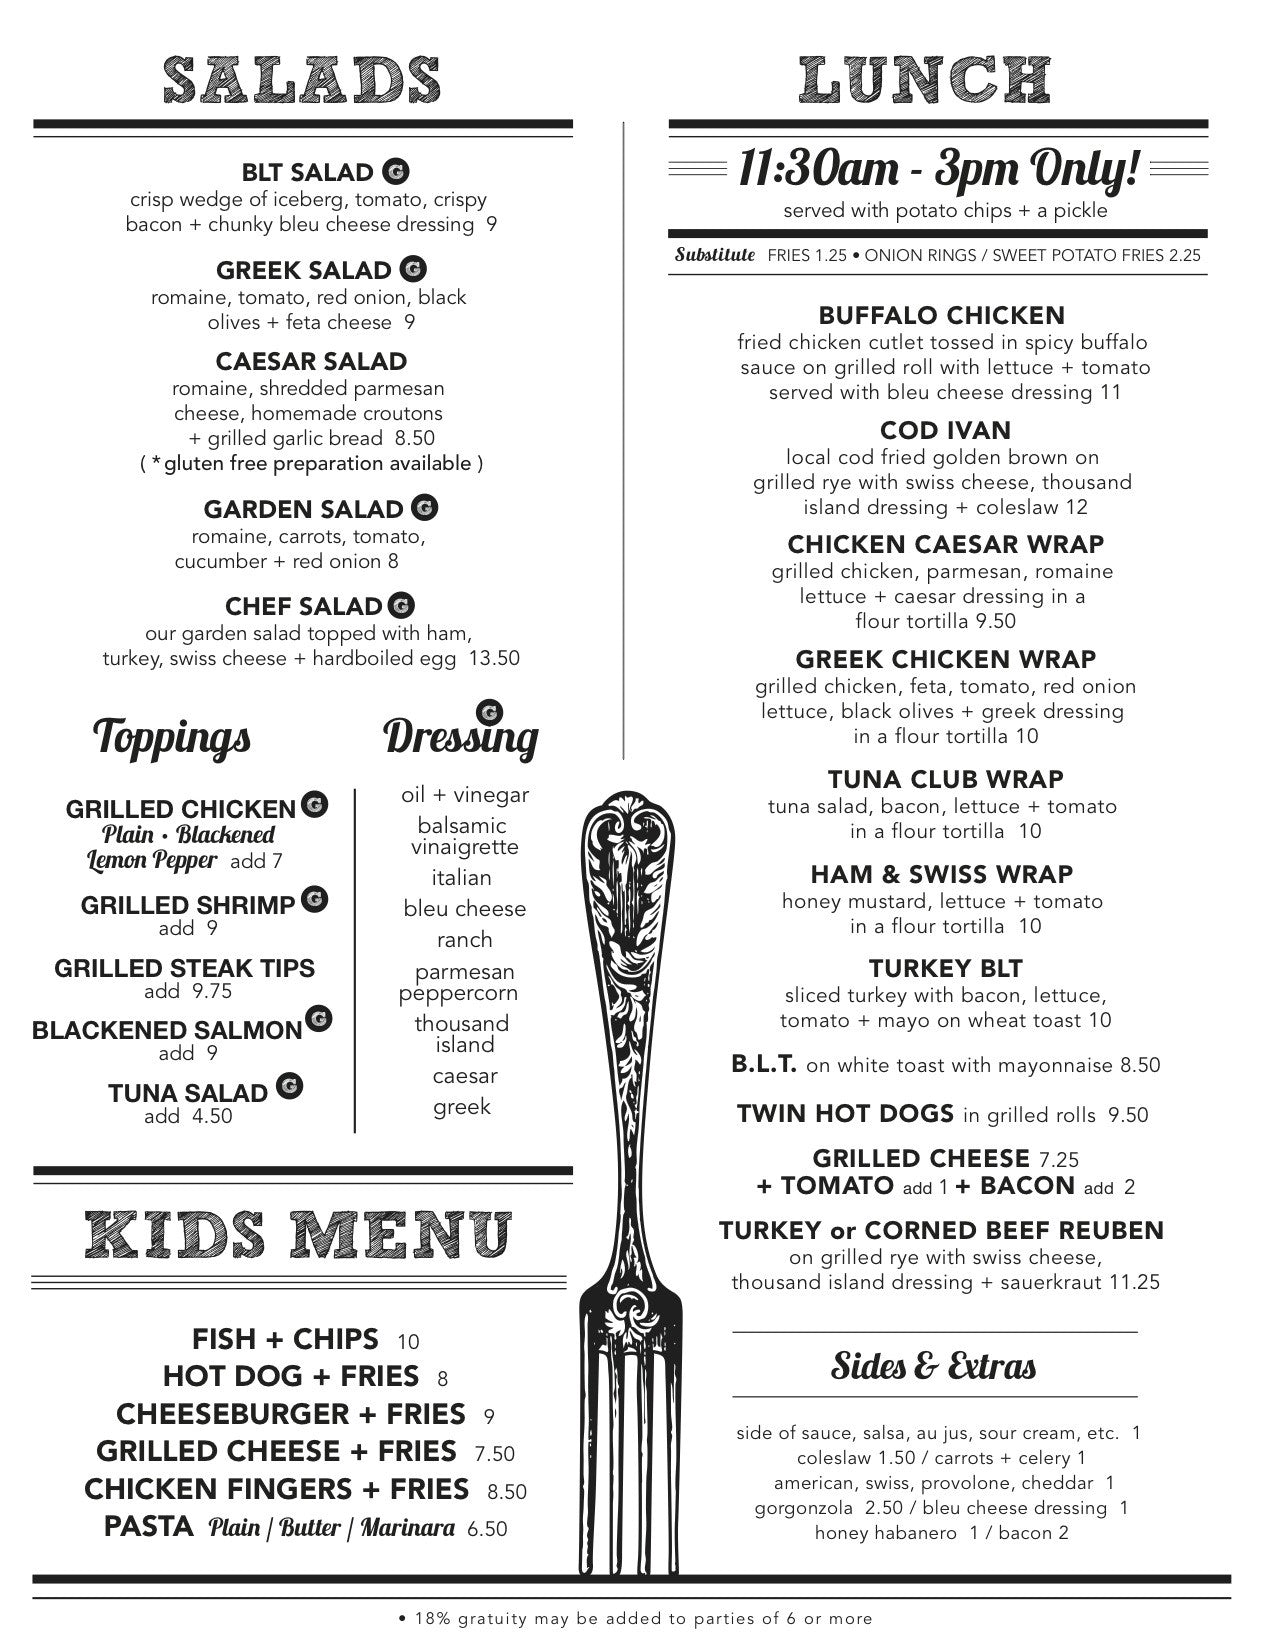 Lost Dog Pub Orleans Salad Menus